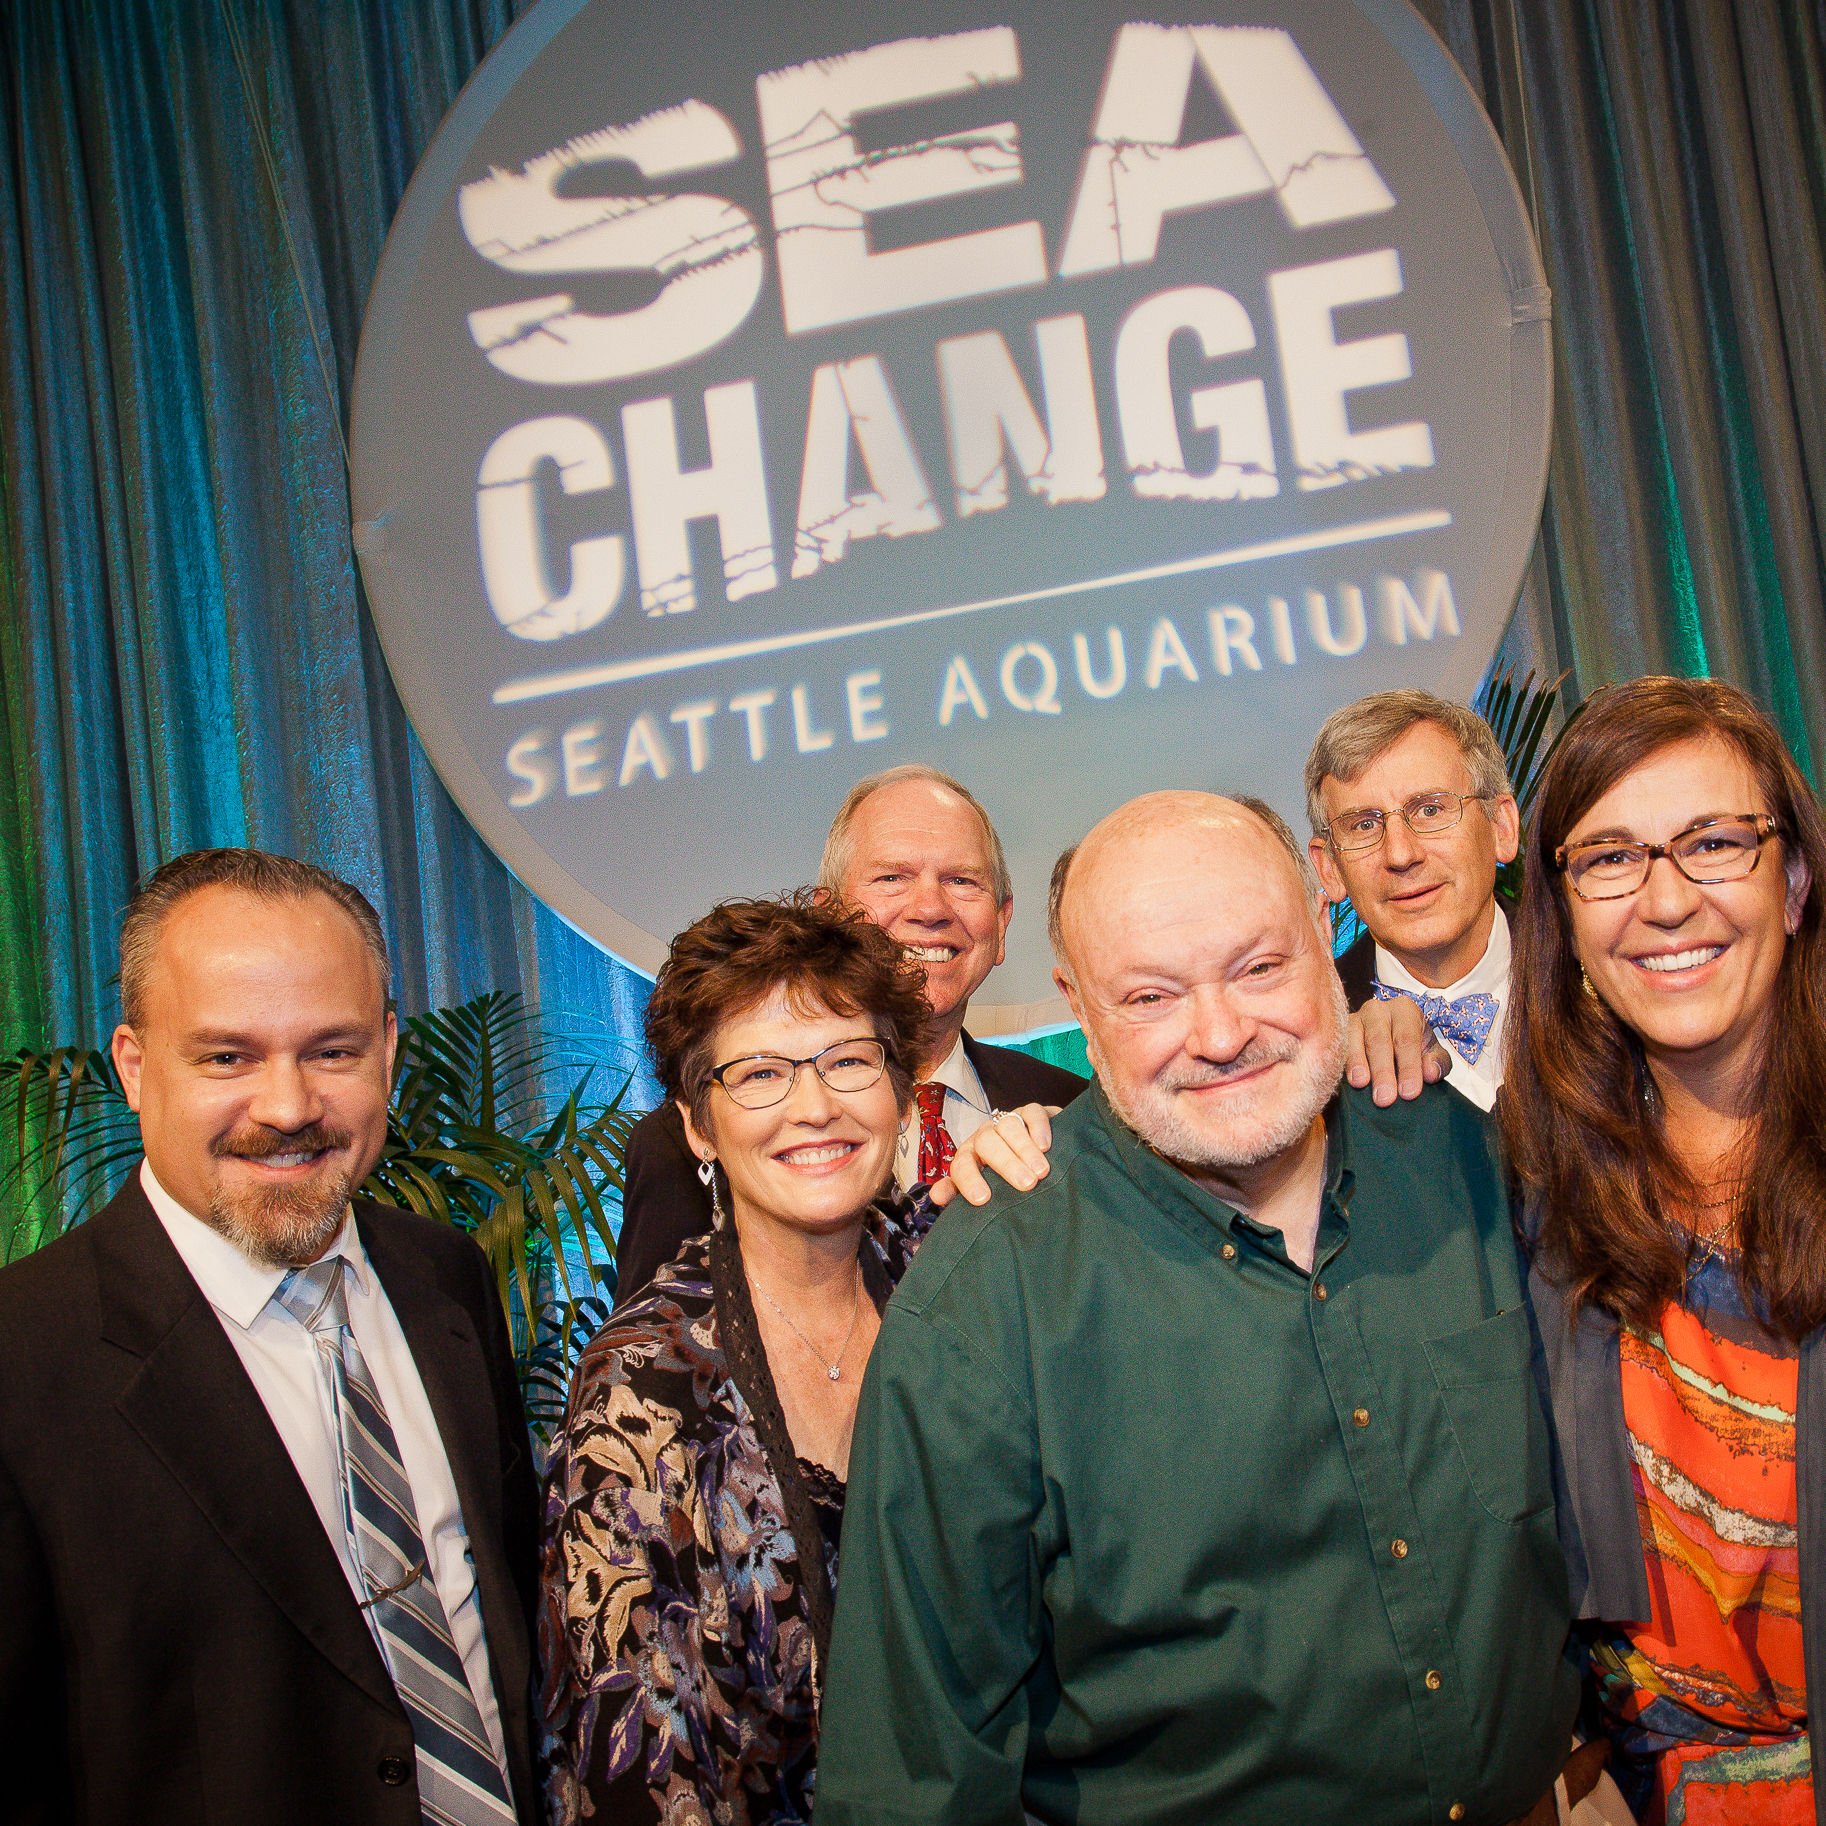 10.6.16 sea change seattle aquarium  v  156 tjdrgy